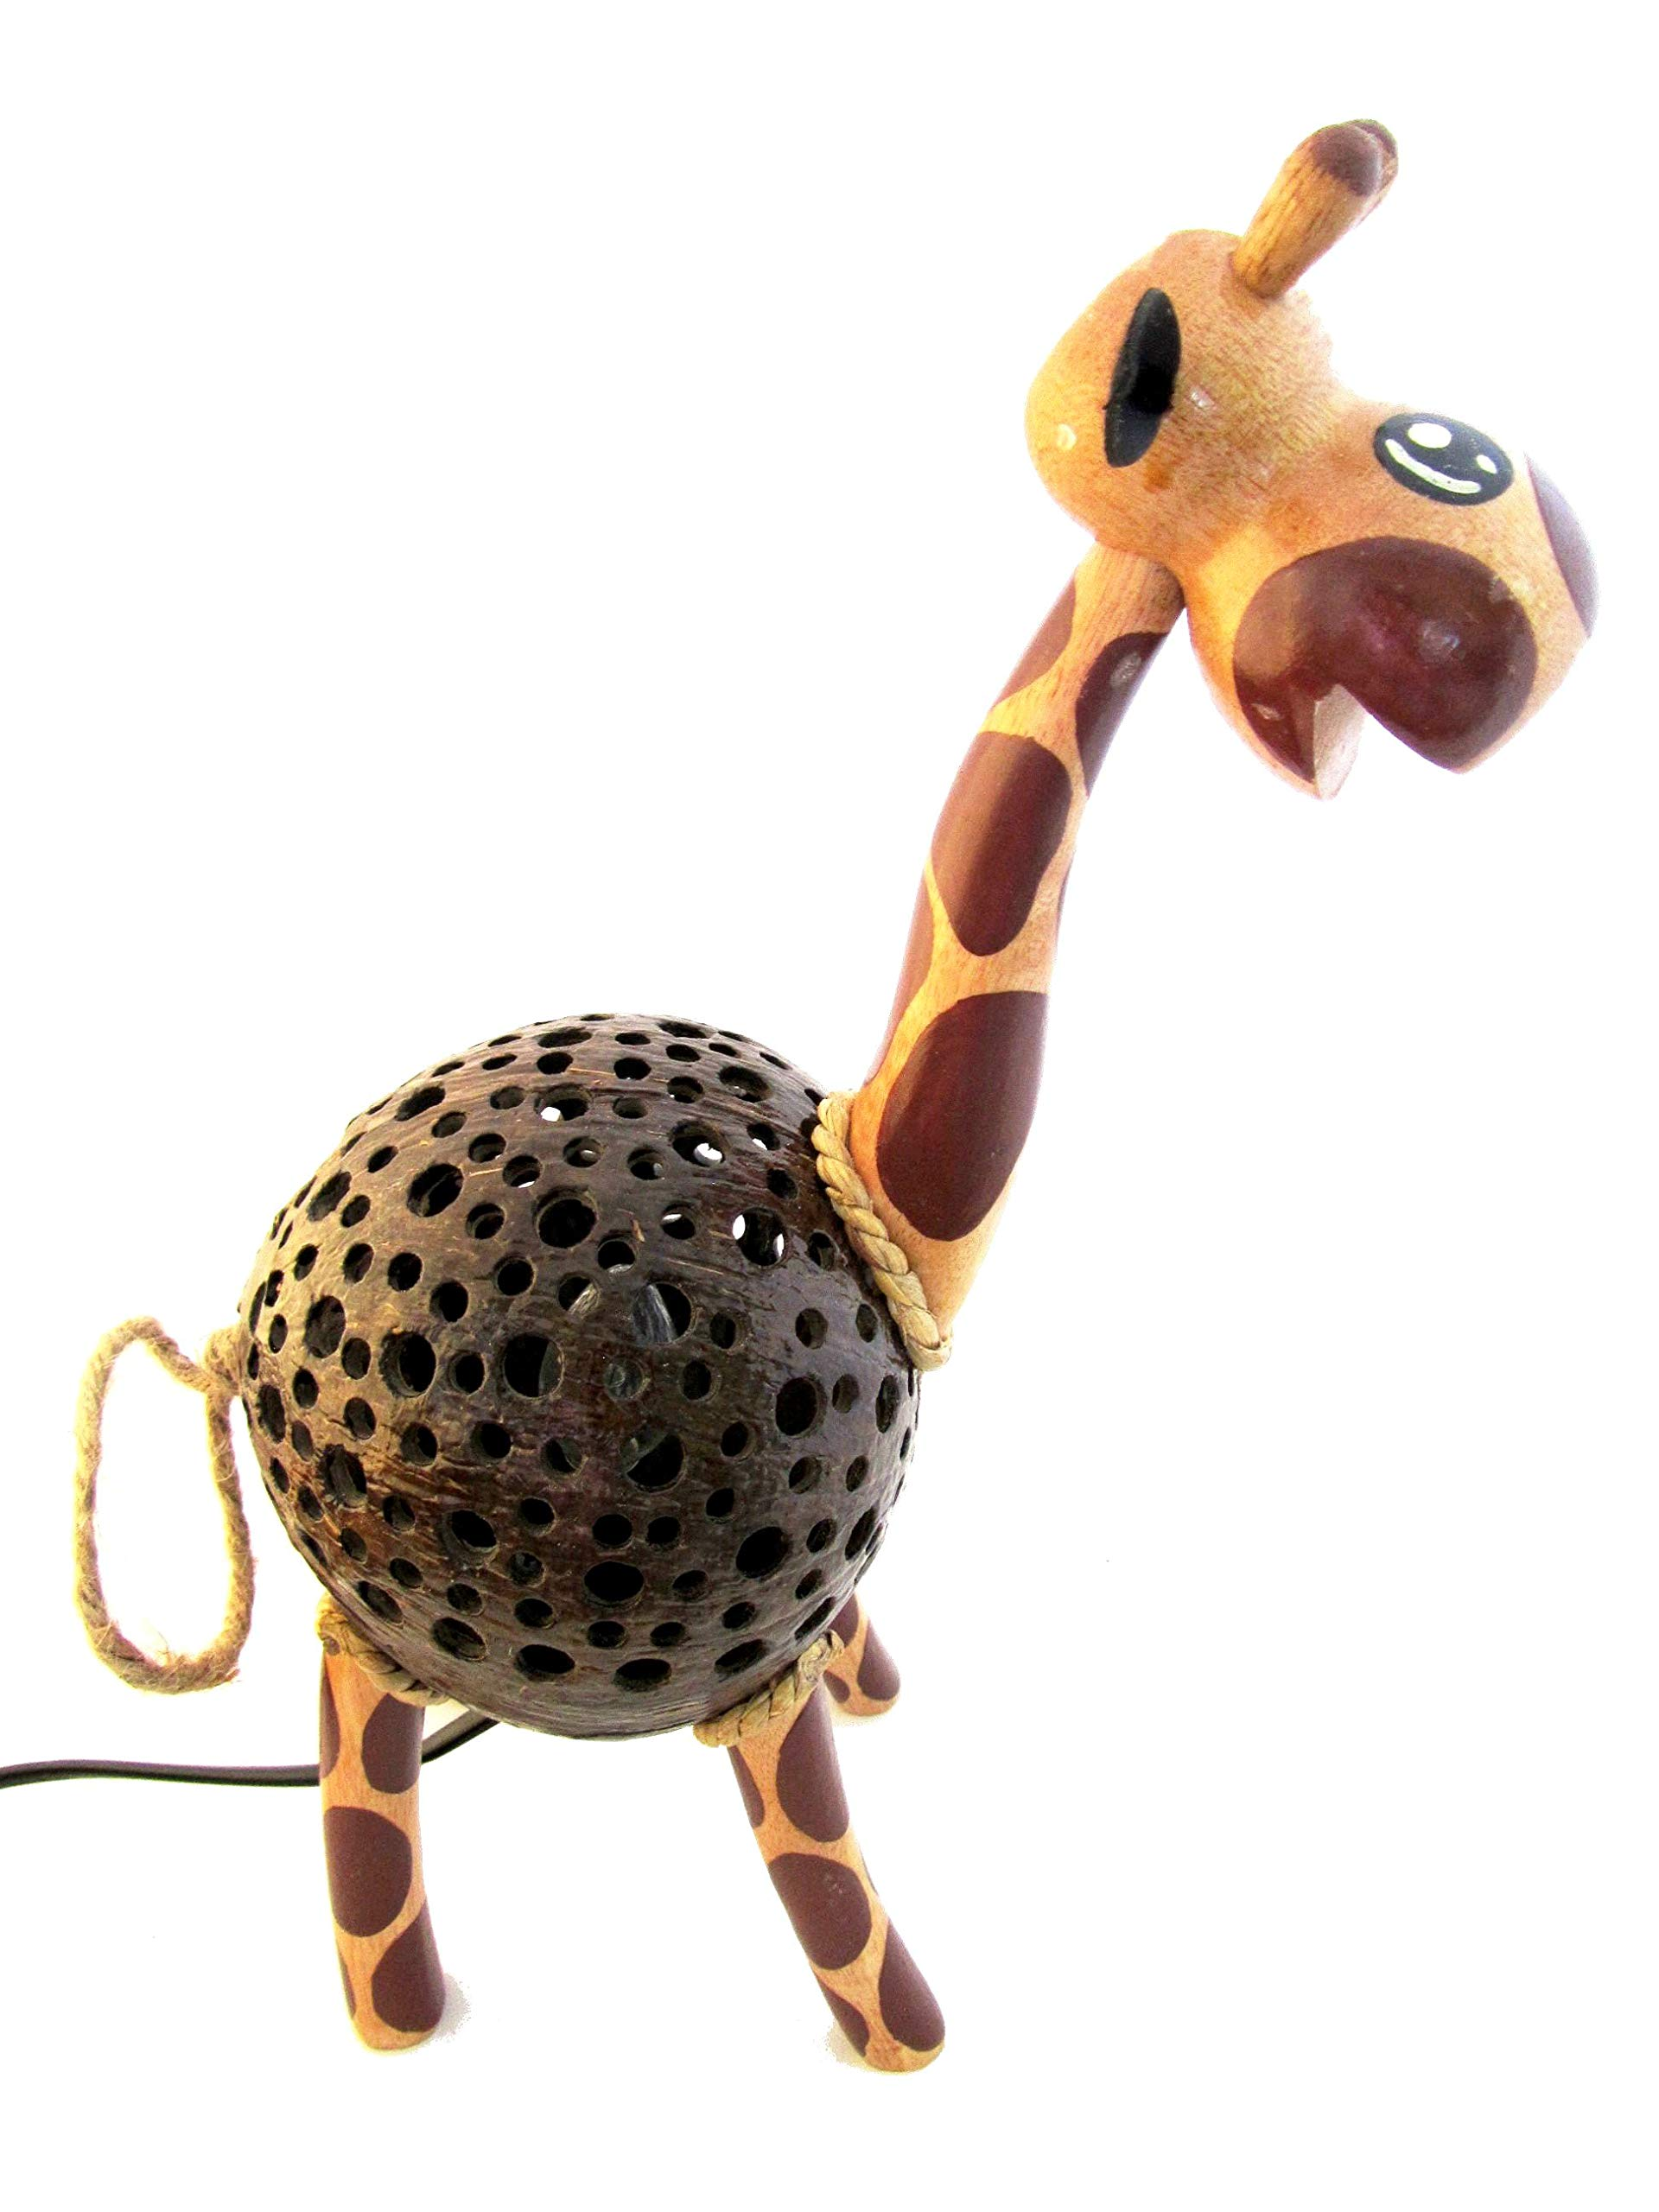 Animal Night Light for Kids Wood Coconut Shell Lamp for Bedroom from Thailand (Giraffe)